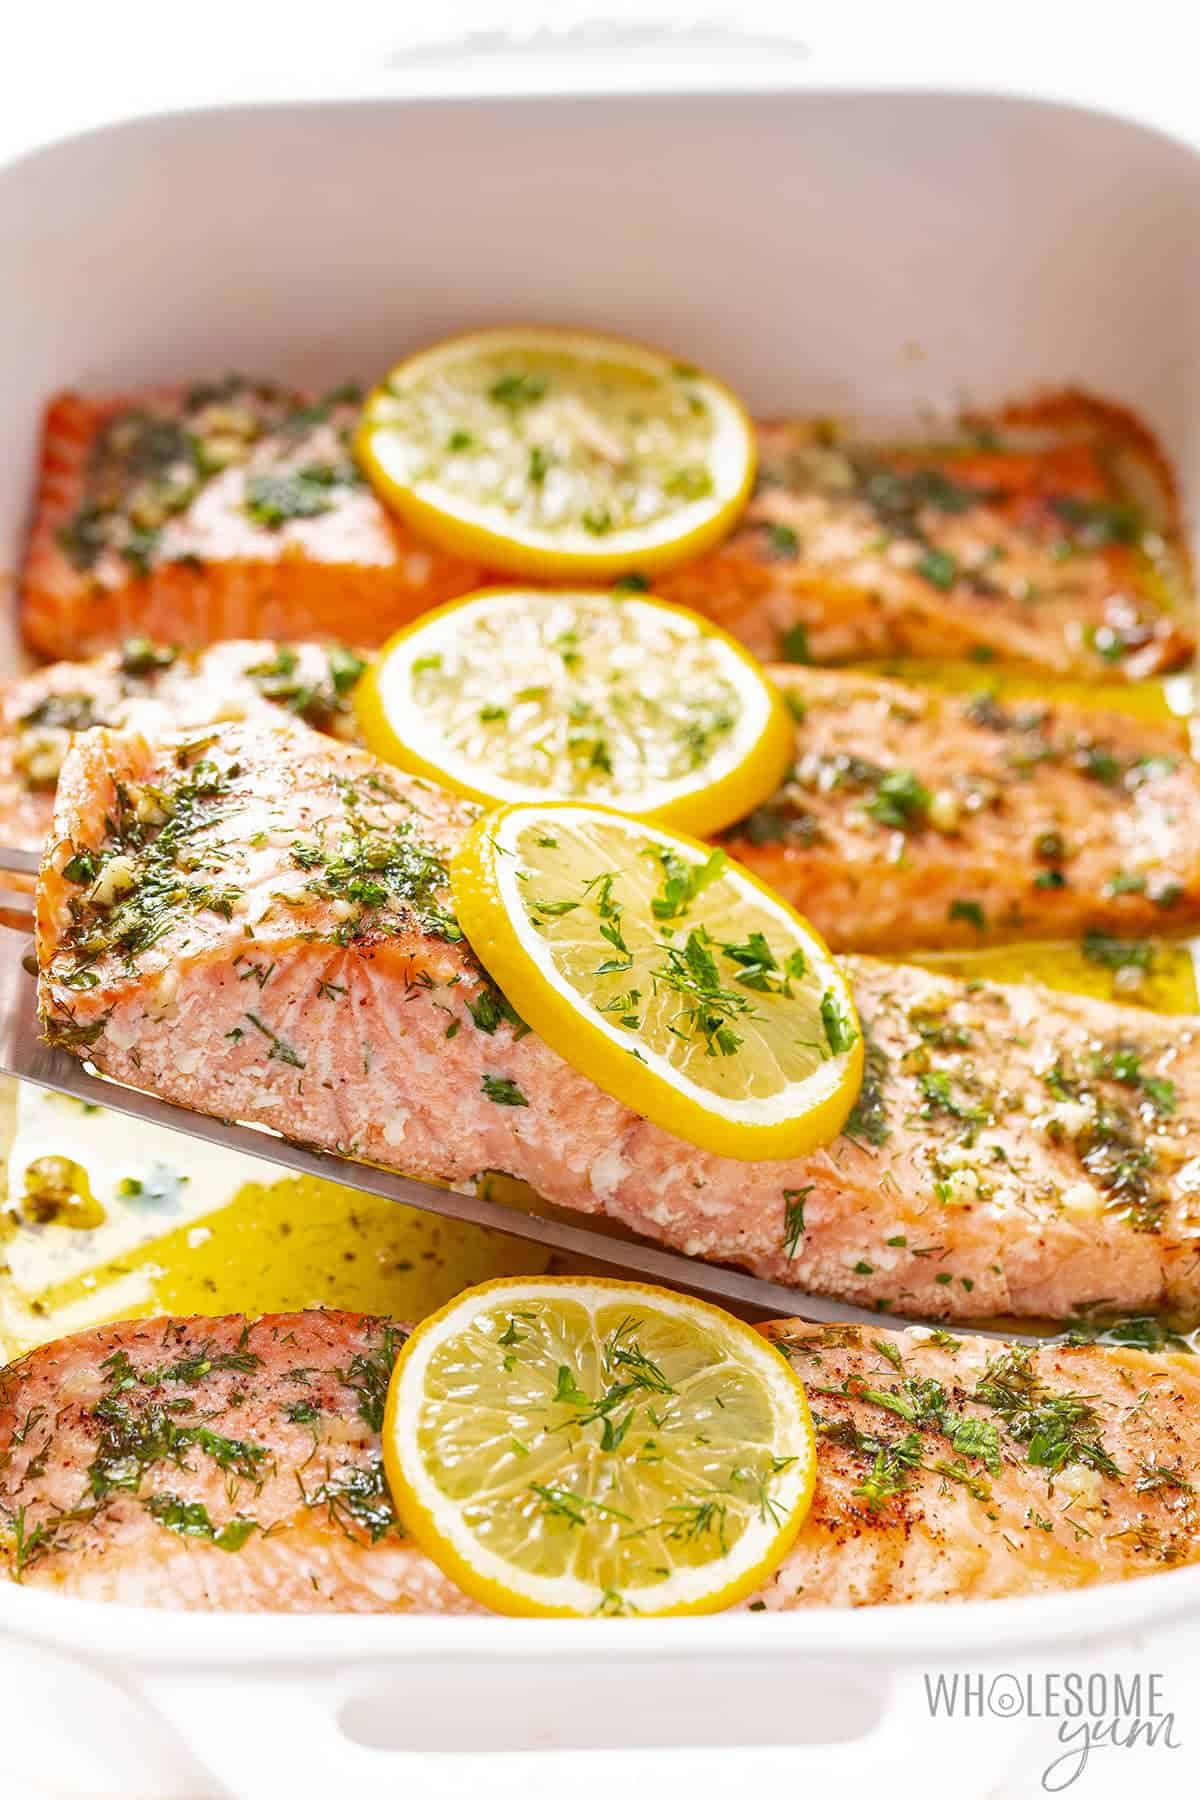 Baking dish with oven baked salmon